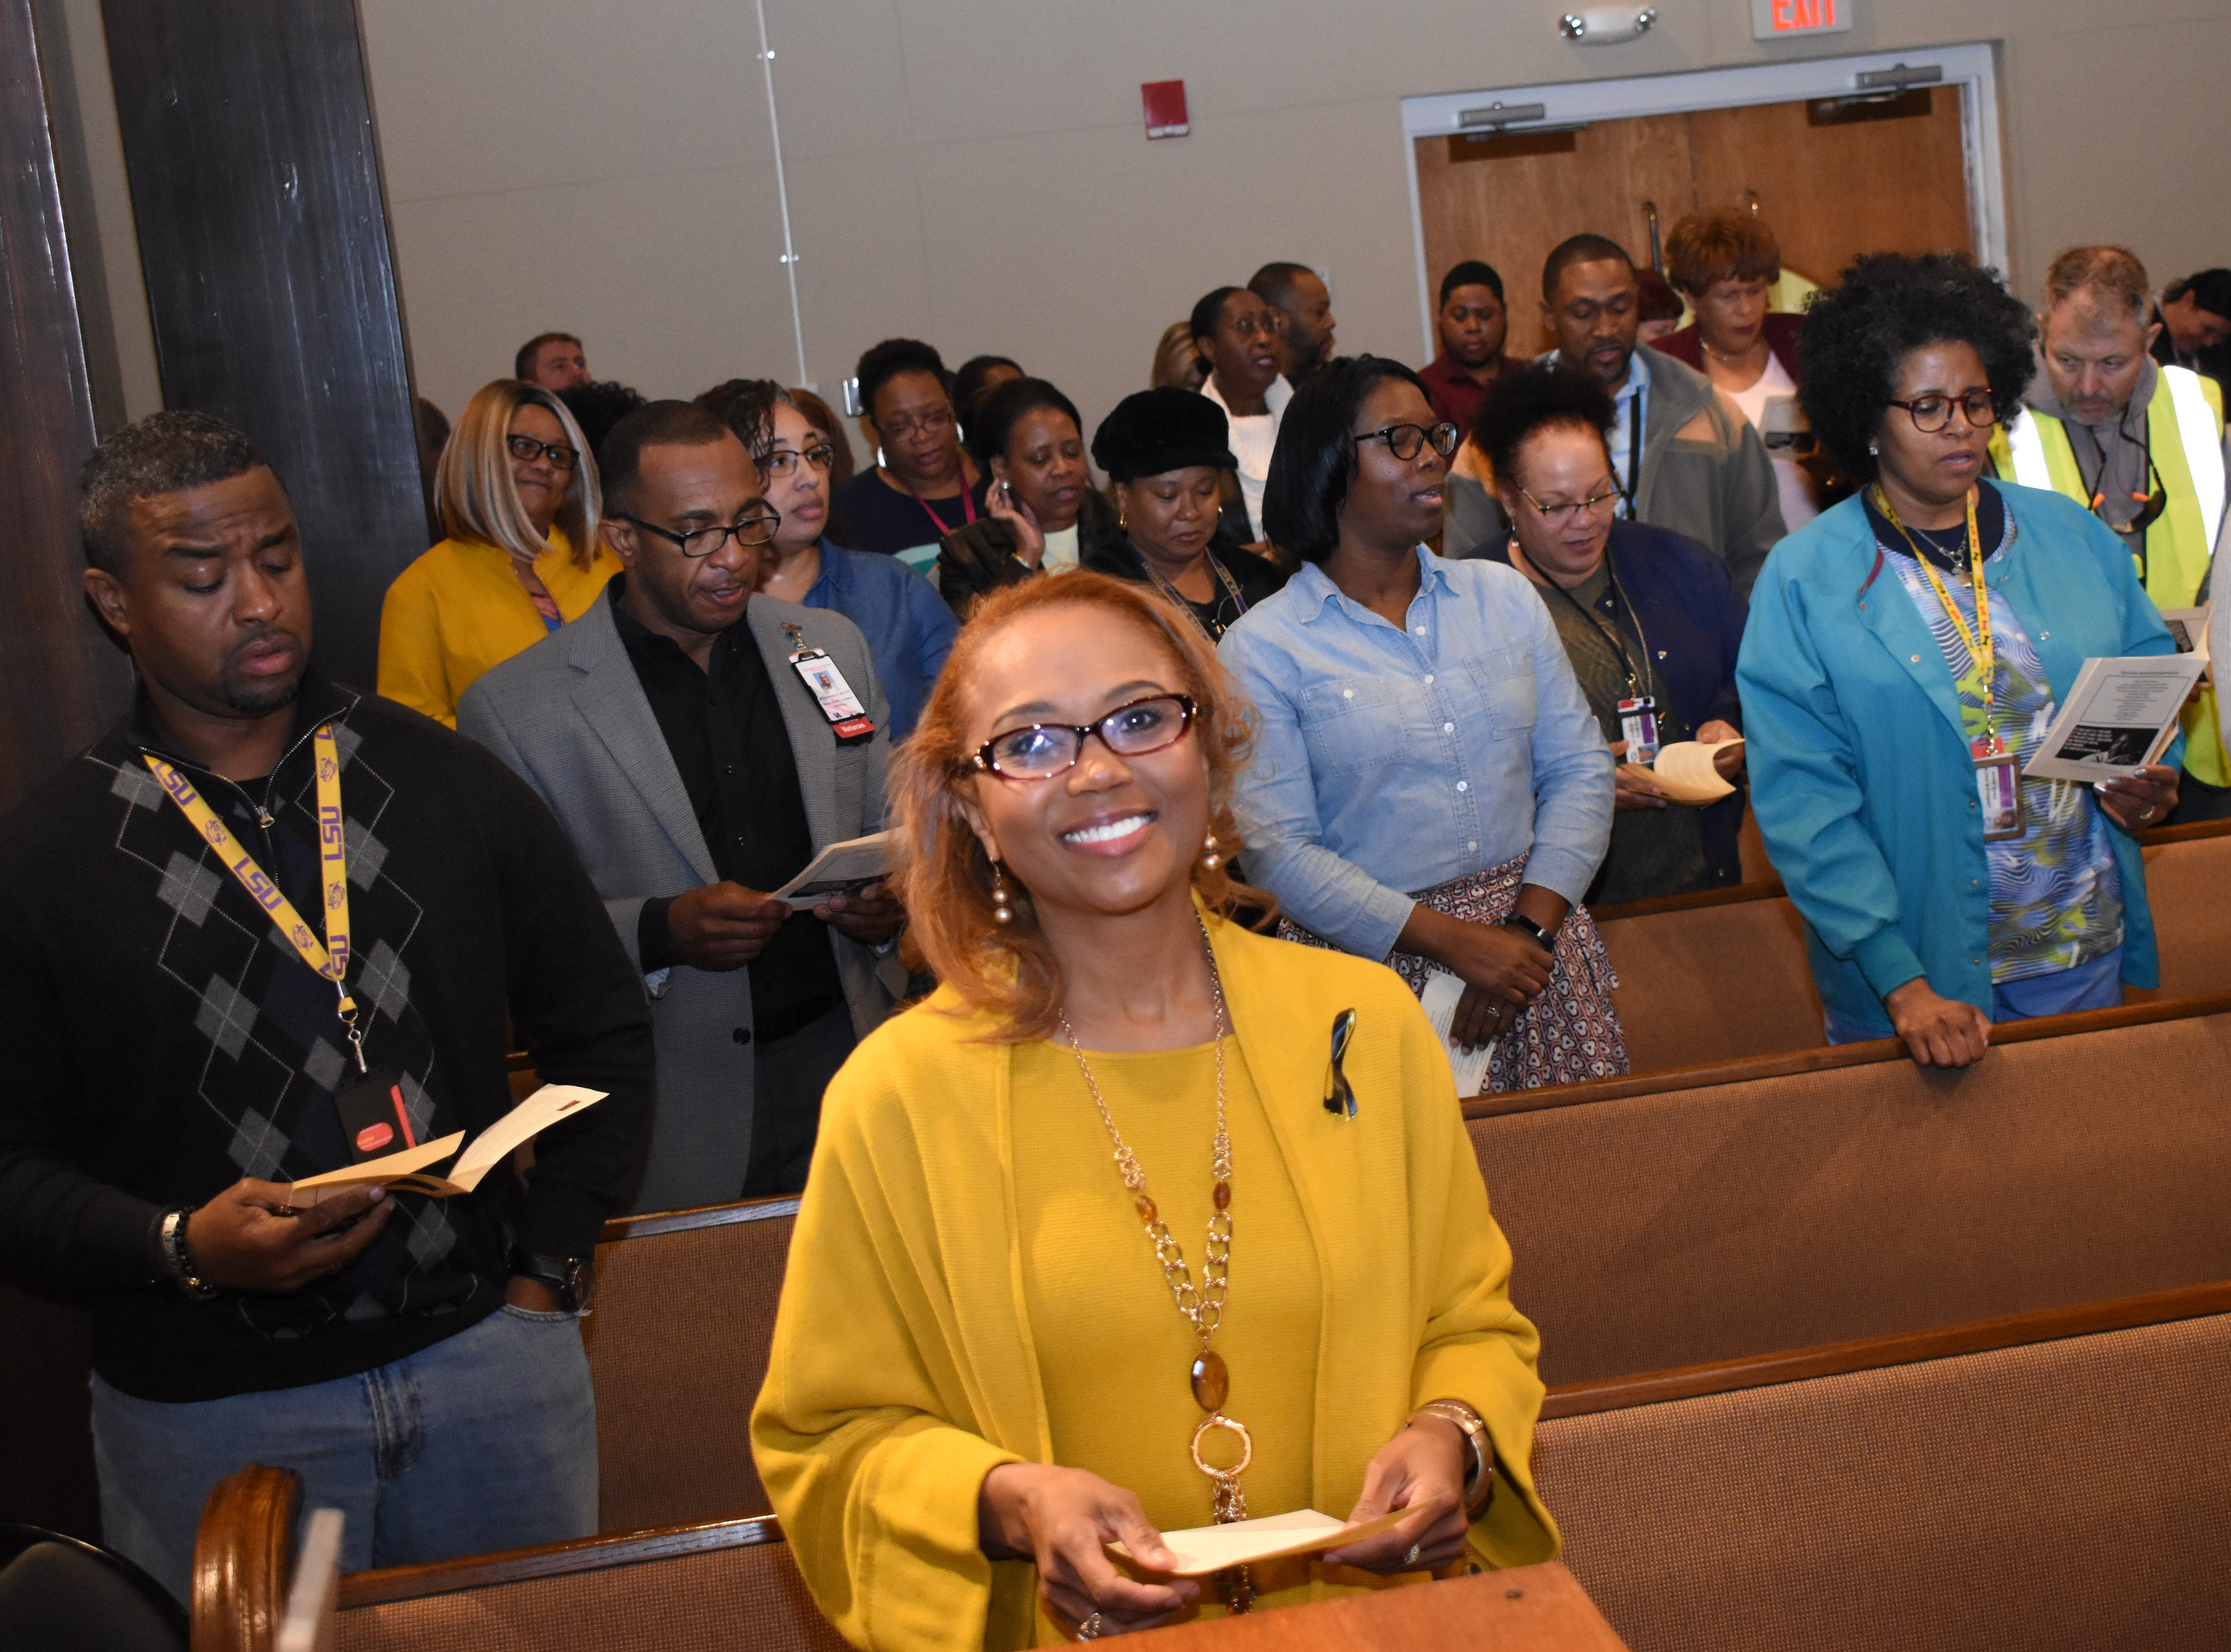 """Carla Buckles Fitzgerald, chief of the sterile processing service at the Alexandria VA Medical Center and a U.S. Army veteran, was the guest speaker for the Dr. Martin Luther King, Jr. service held Friday, Jan. 18, 2019 at the Alexandria VAMC Chapel. Events in the area to mark Martin Luther King Jr. Day include the annual Epsilon Psi Lambda Chapter of Alpha Phi Alpha Fraternity's wreath-laying at 4:30 p.m. Sunday at the Martin Luther King Jr.Êmonument located at the corner of Murray and Martin Luther King Jr.Ê Drive. Rev. J.L. Franklin of Lake Charles and president of the Southwest Louisiana Community Coalition for Action and the Louisiana Community Coalition for Action Inc. will be the guest speaker. On Monday, activities began at 6:30 a.m. with a prayer breakfast at Alexandria Convention Hall in downtown Alexandria. The annual parade begins at 10 a.m. on Bolton Avenue and proceeds down Jackson Street to the Alexandria Edward G. """"Ned"""" Randolph Riverfront Center where a noon day rally will be held. Recently elected Alexandria mayor Jeff Hall and Peabody Magnet High School head basketball coach and athletic director Charles Smith are the grand marshals. A business expo will be held from 2-5 p.m. and at 4 p.m., the D.R.E.A.M. Spelling Bee Finale will start. Both are also at the Riverfront Center. At 6 p.m., """"King in the Wilderness"""" will screen at the Coughlin-Saunders Performing Arts Center."""